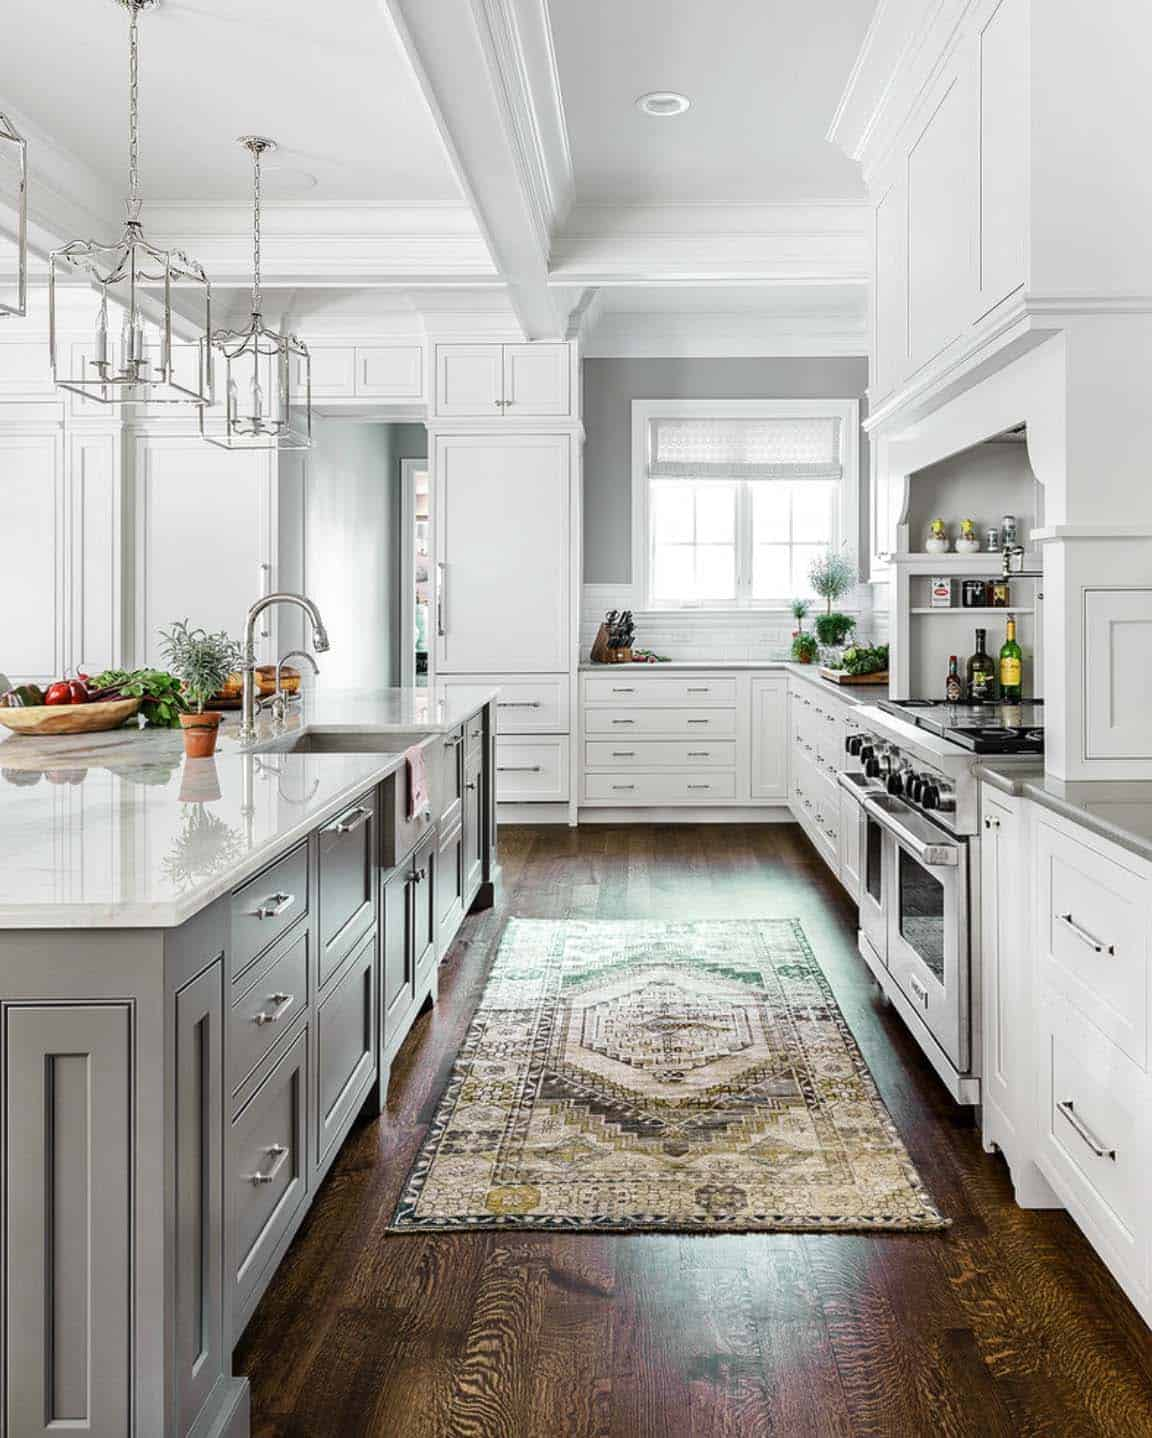 Kitchen Renovation Plans: 30+ Beautiful And Inspiring Light-filled Kitchens With